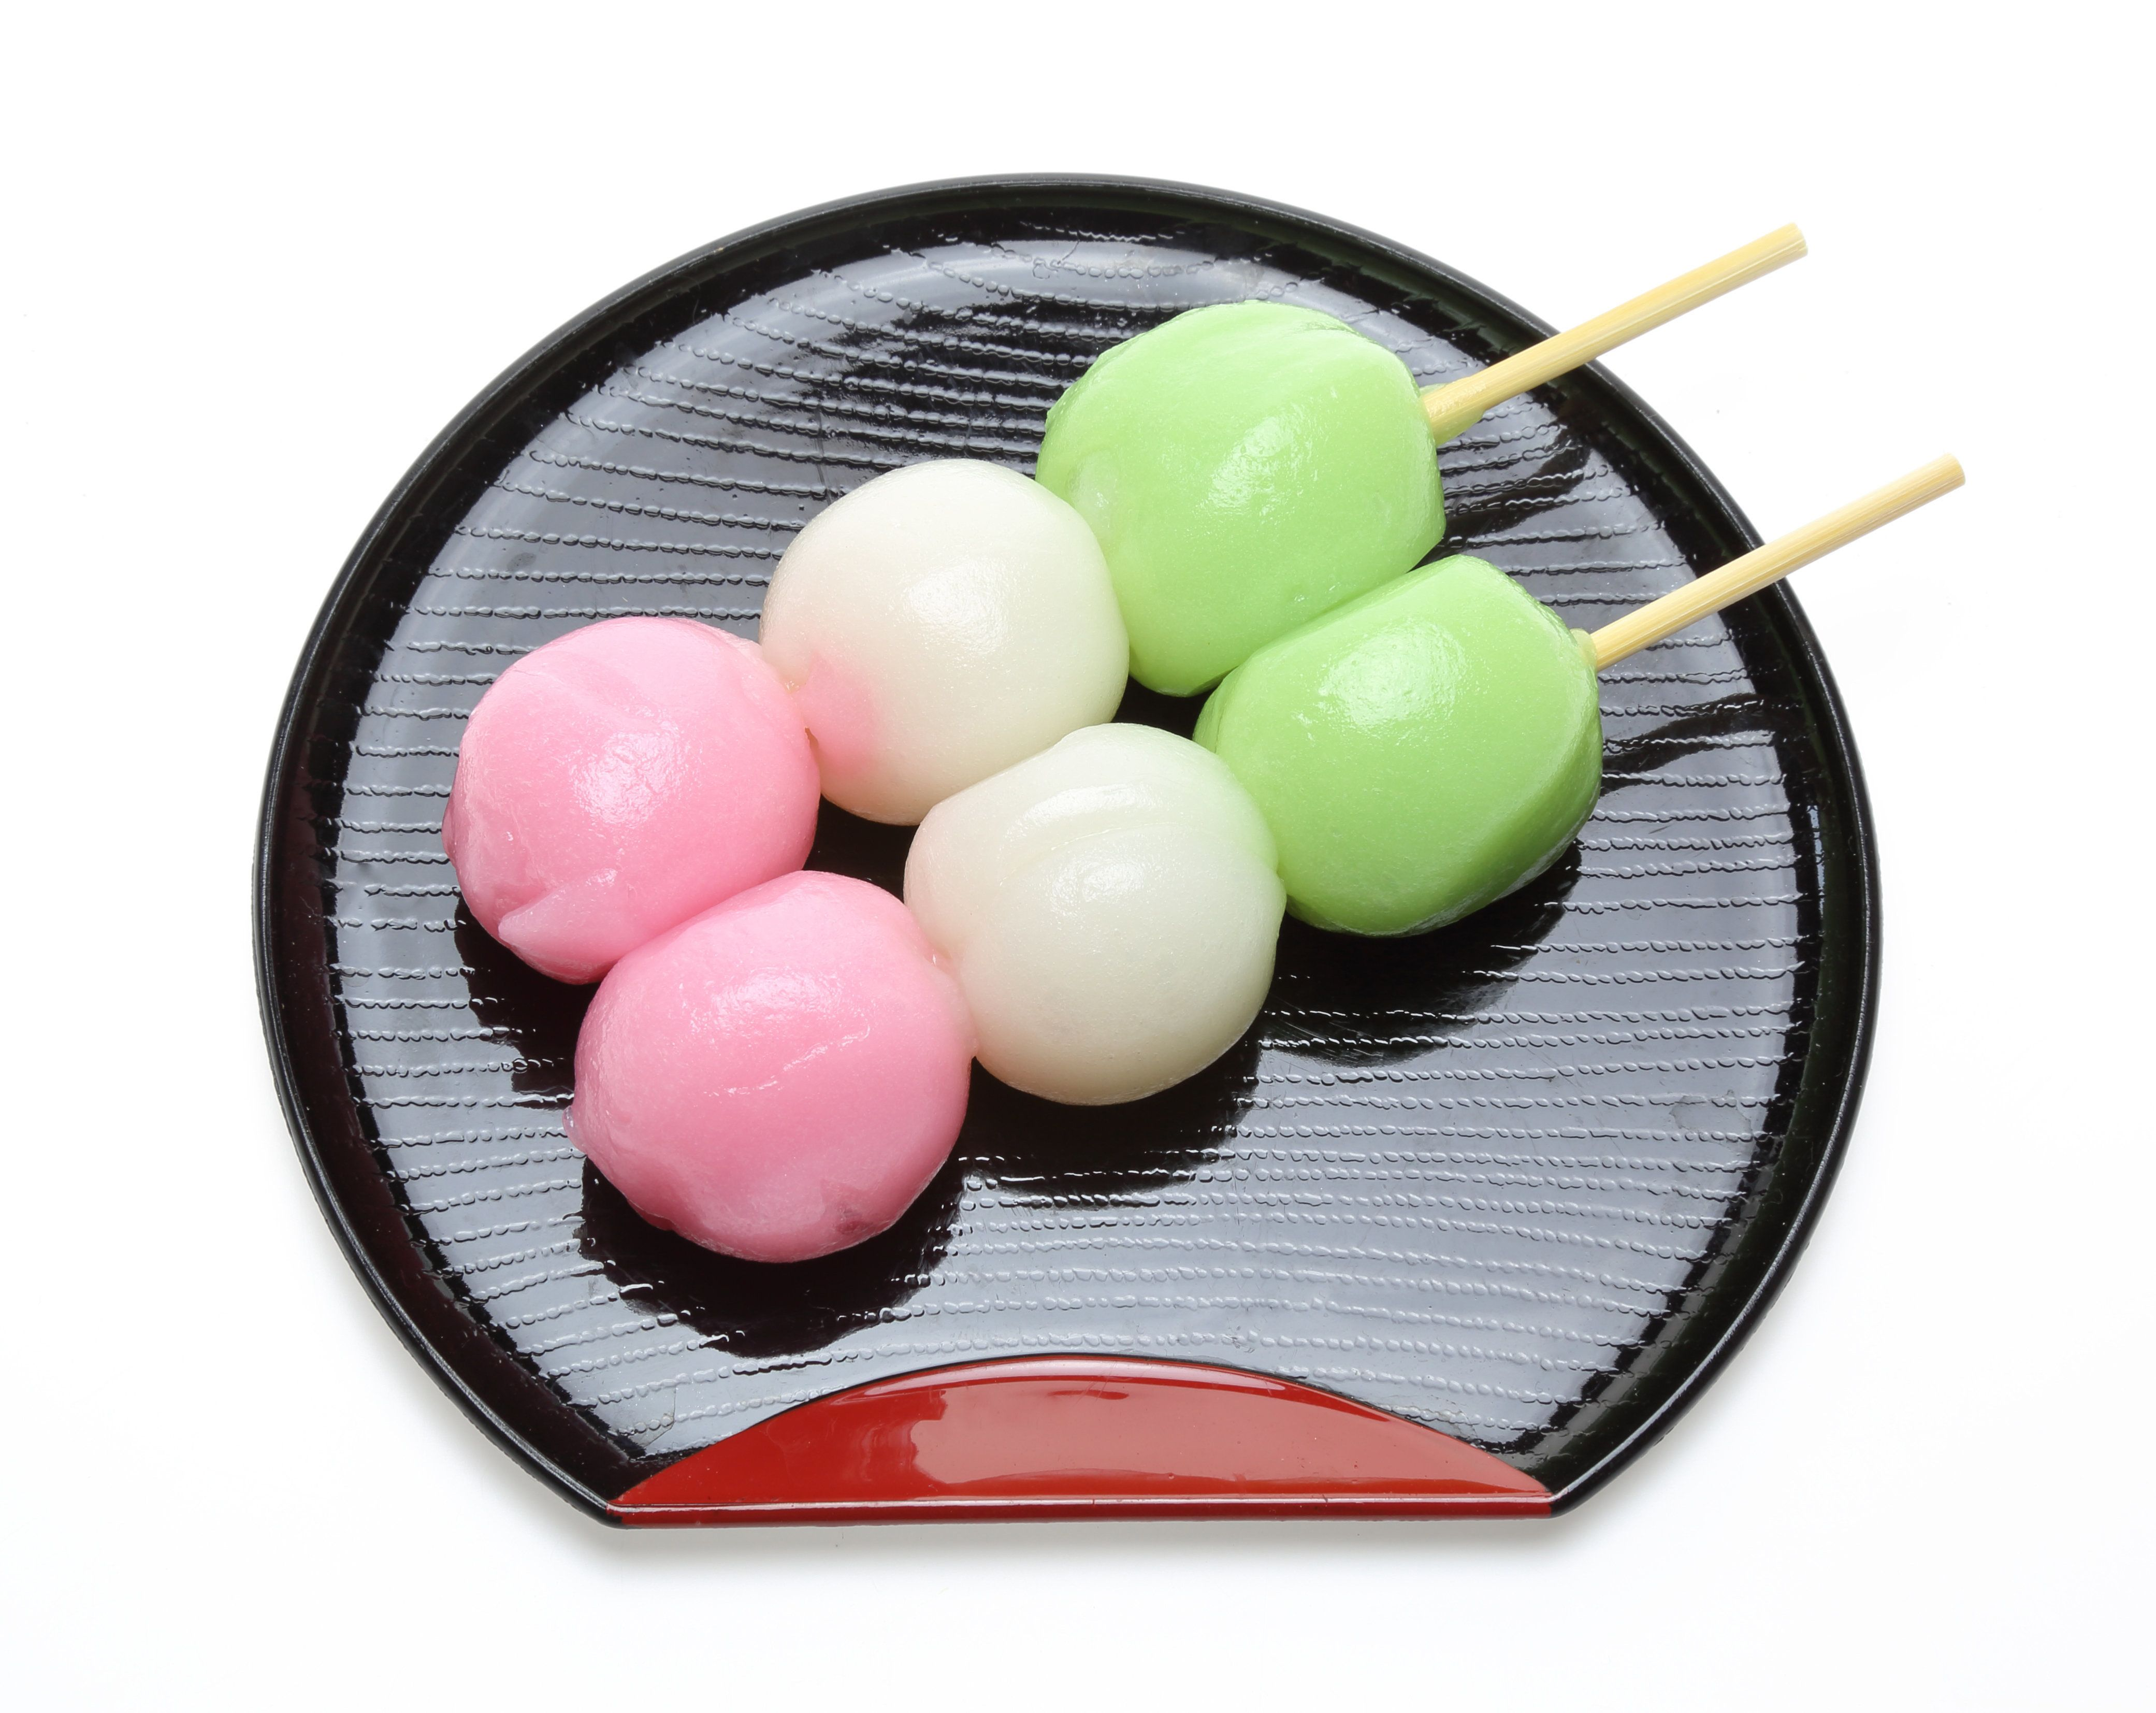 Pictured Japanese dumpling on a dish.